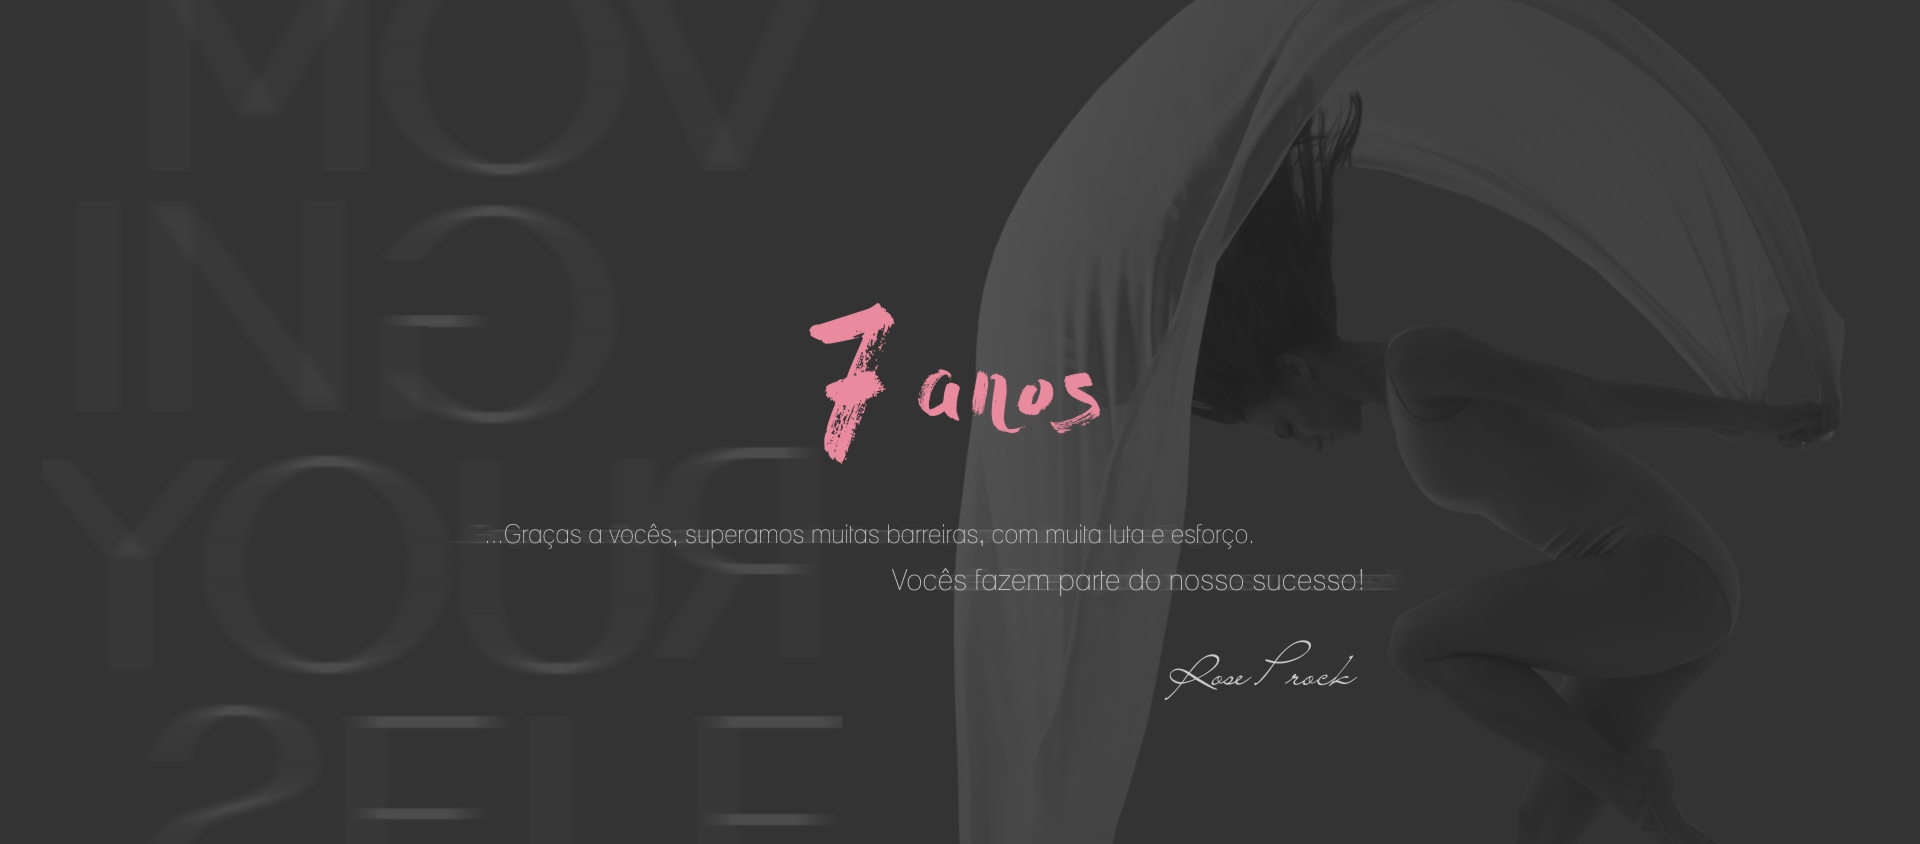 Evidence - 7 anos - banner